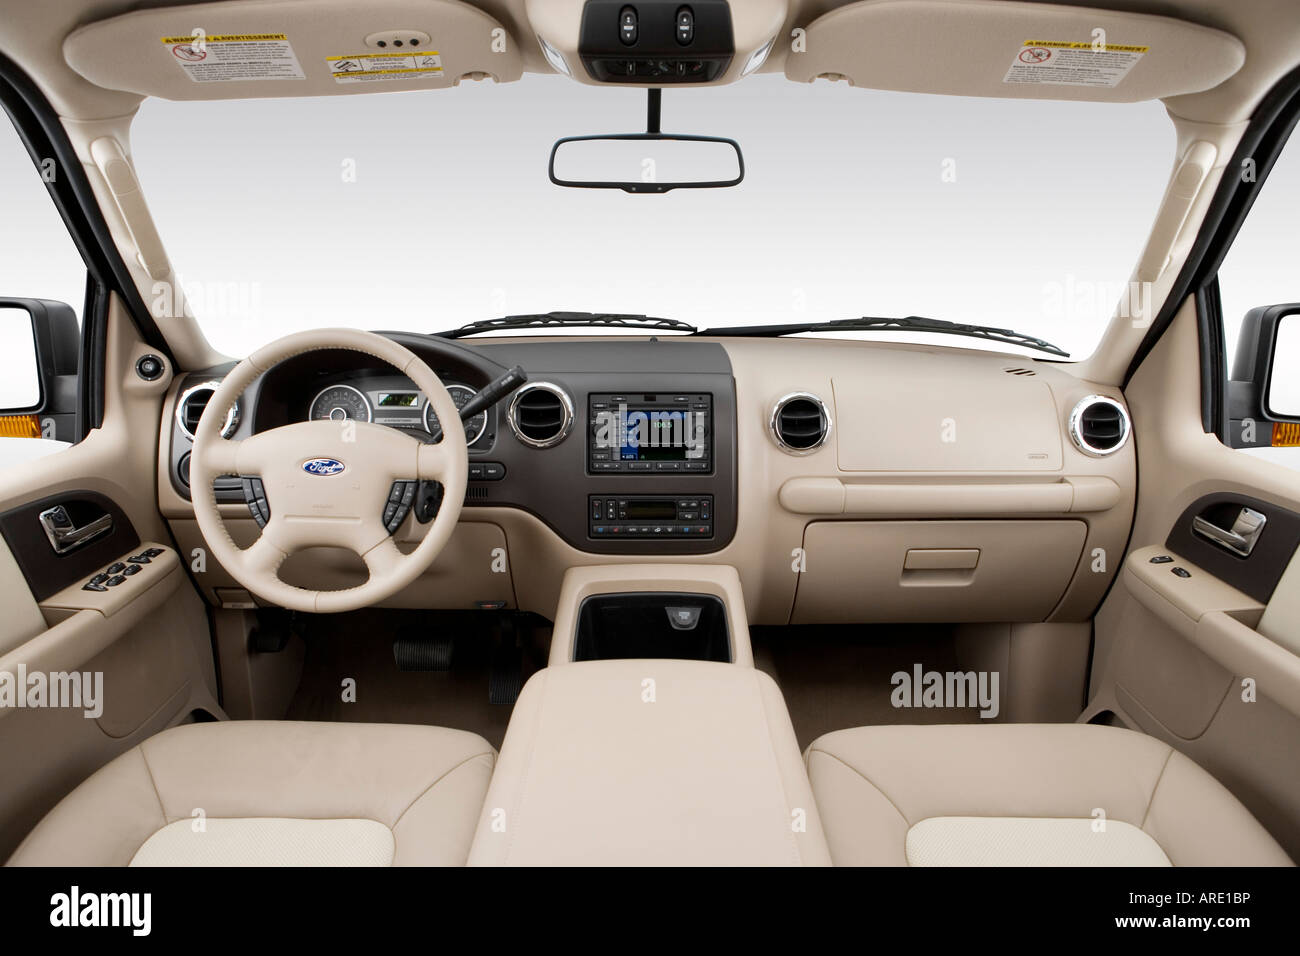 2006 ford expedition eddie bauer in black dashboard center stock photo 16025433 alamy. Black Bedroom Furniture Sets. Home Design Ideas